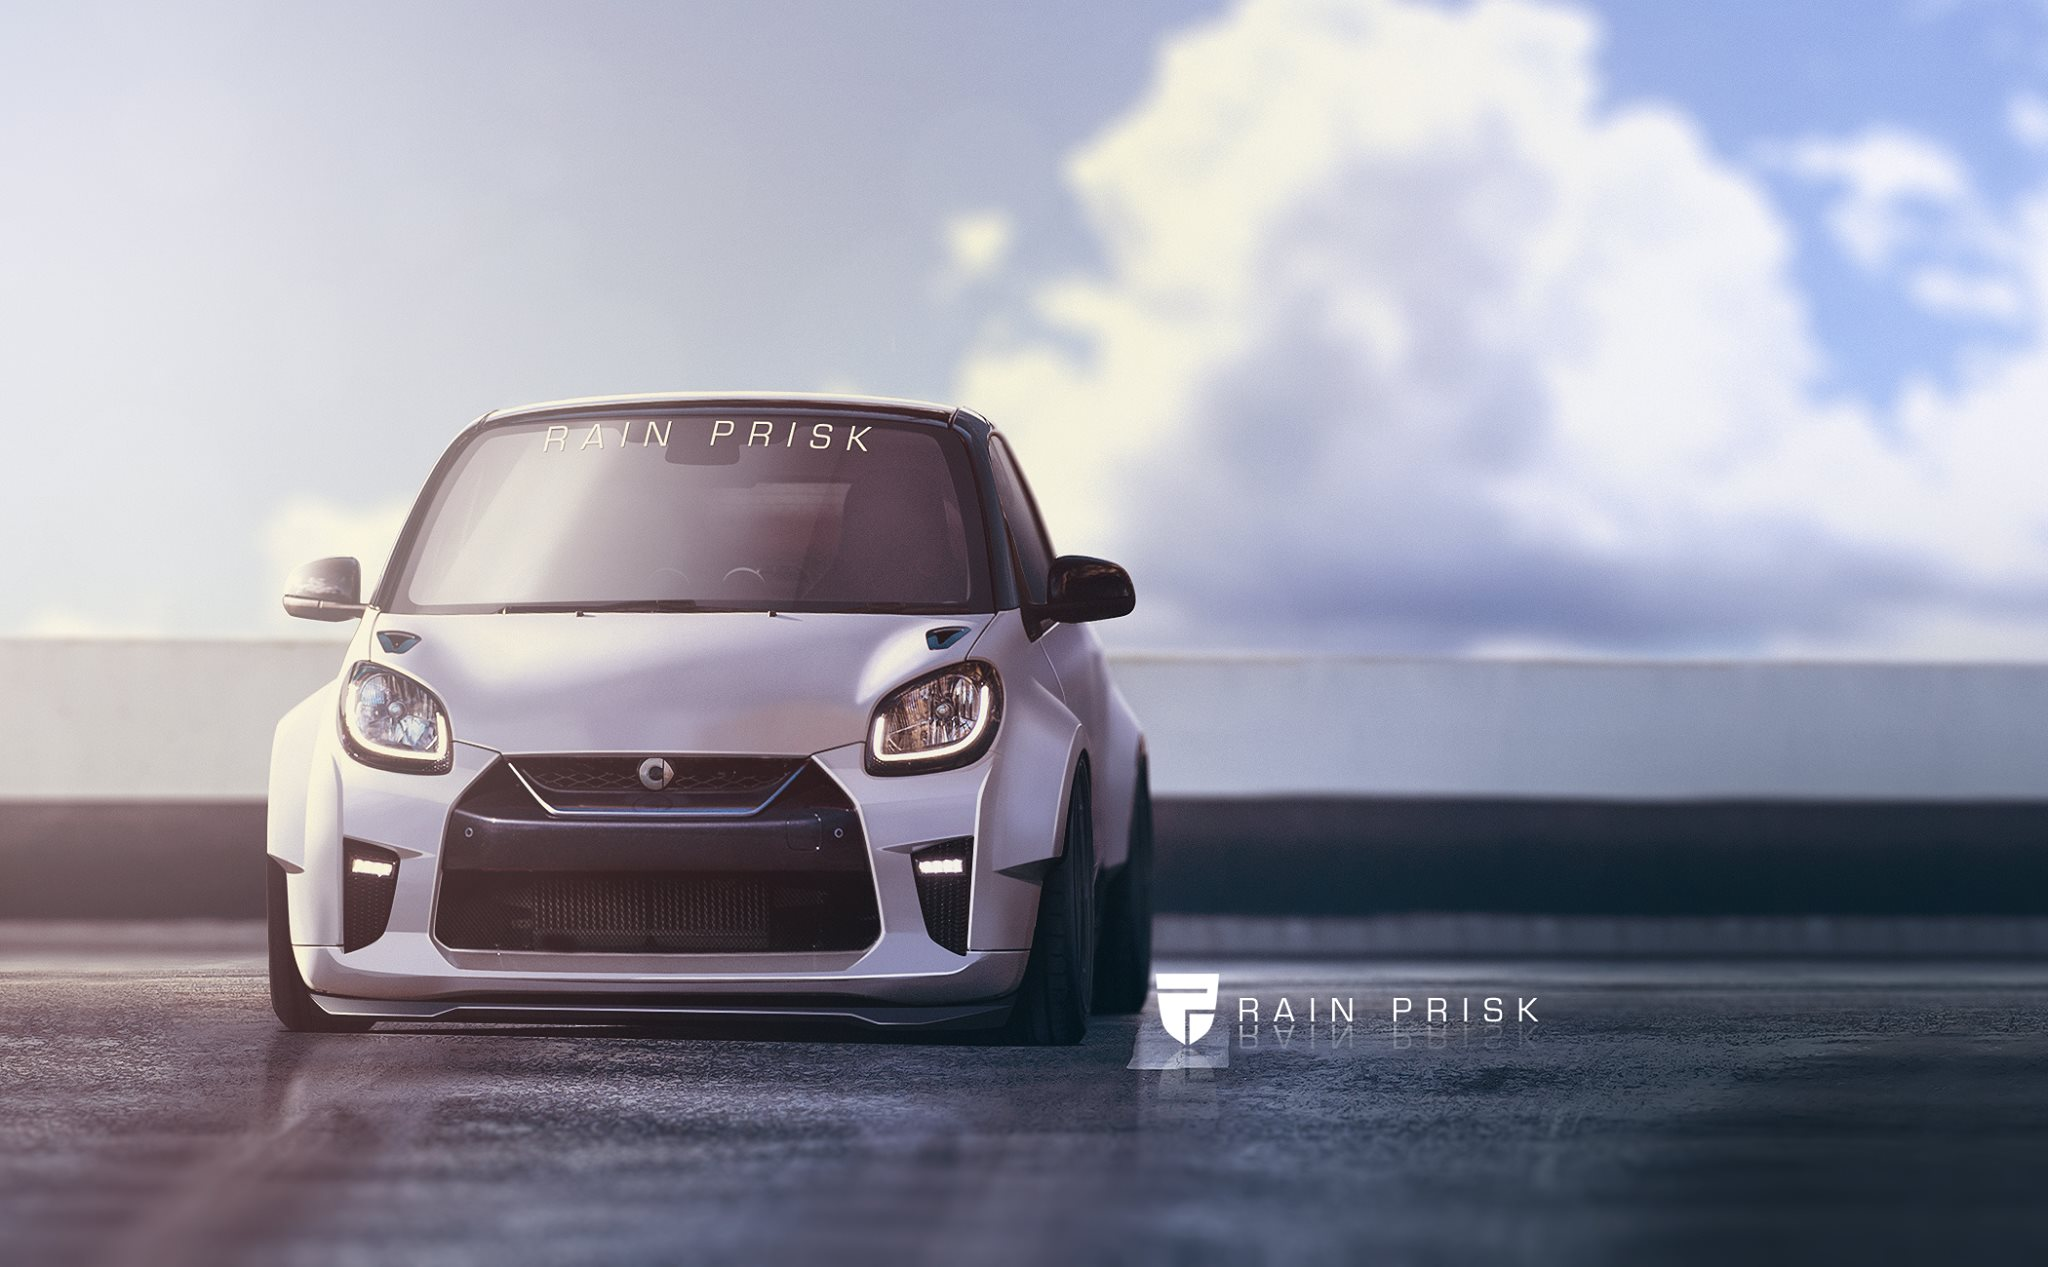 2017 Nissan Gt R And Smart Fortwo Make For An Extreme Mashup